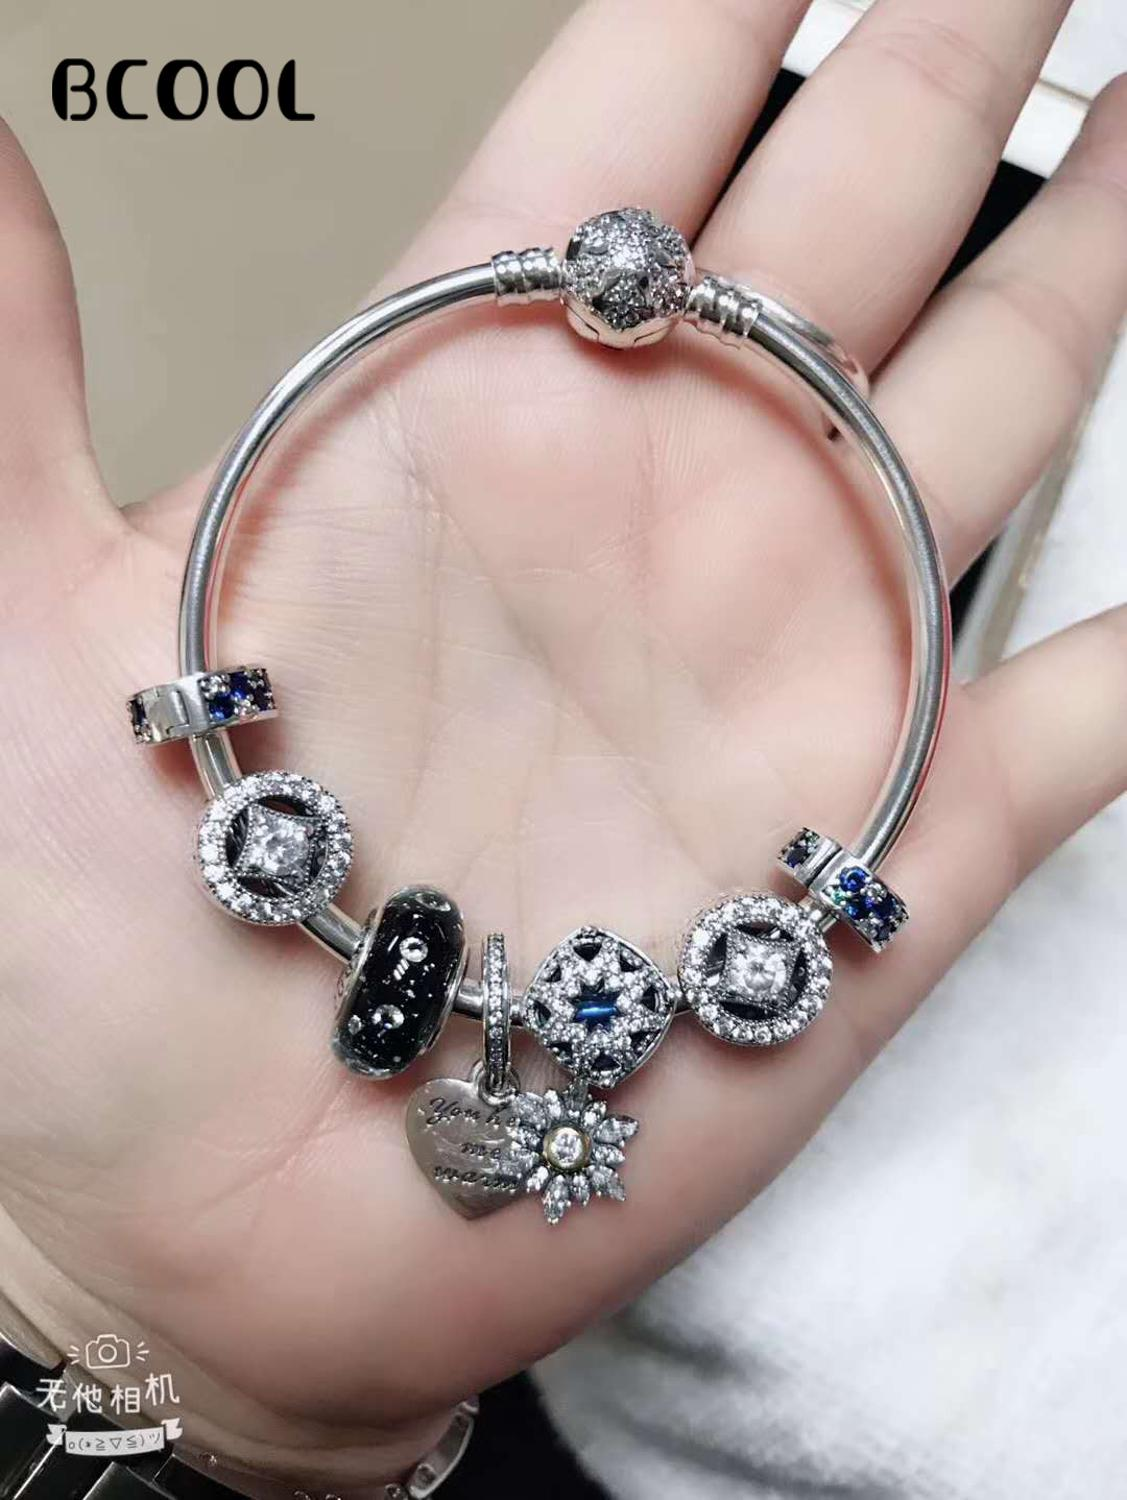 100%925 Sterling Silver Original 1:1, Fashionable Silver Bracelet, Suitable For Women Love Crystal Beads Bracelet Jewelry100%925 Sterling Silver Original 1:1, Fashionable Silver Bracelet, Suitable For Women Love Crystal Beads Bracelet Jewelry